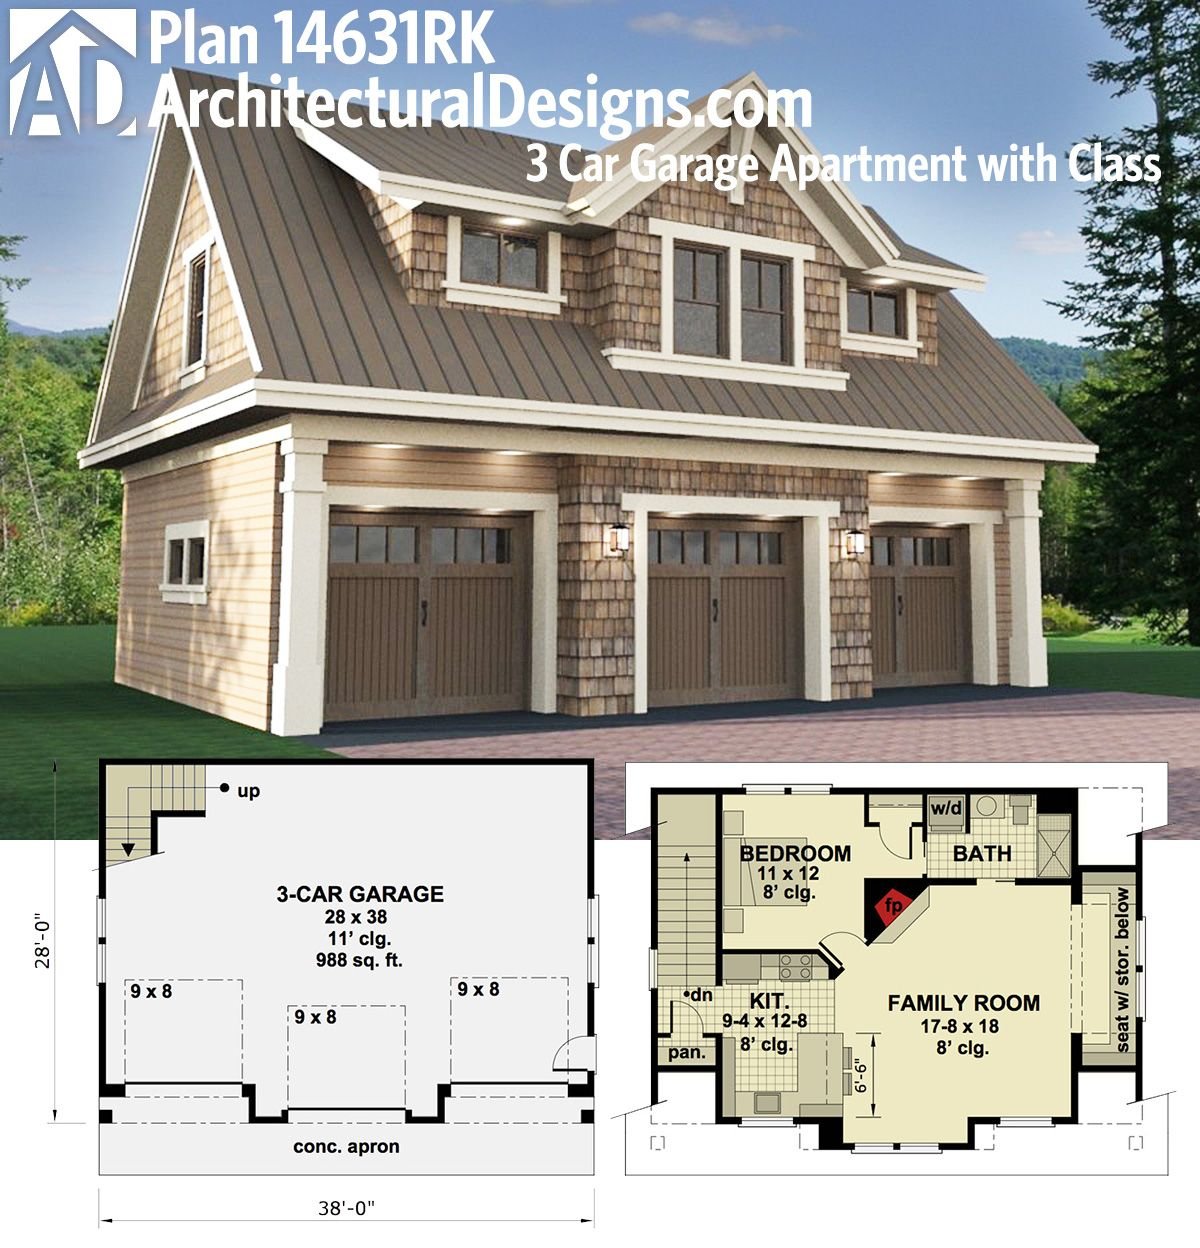 Plan 14631rk 3 car garage apartment with class carriage for Single car garage with apartment